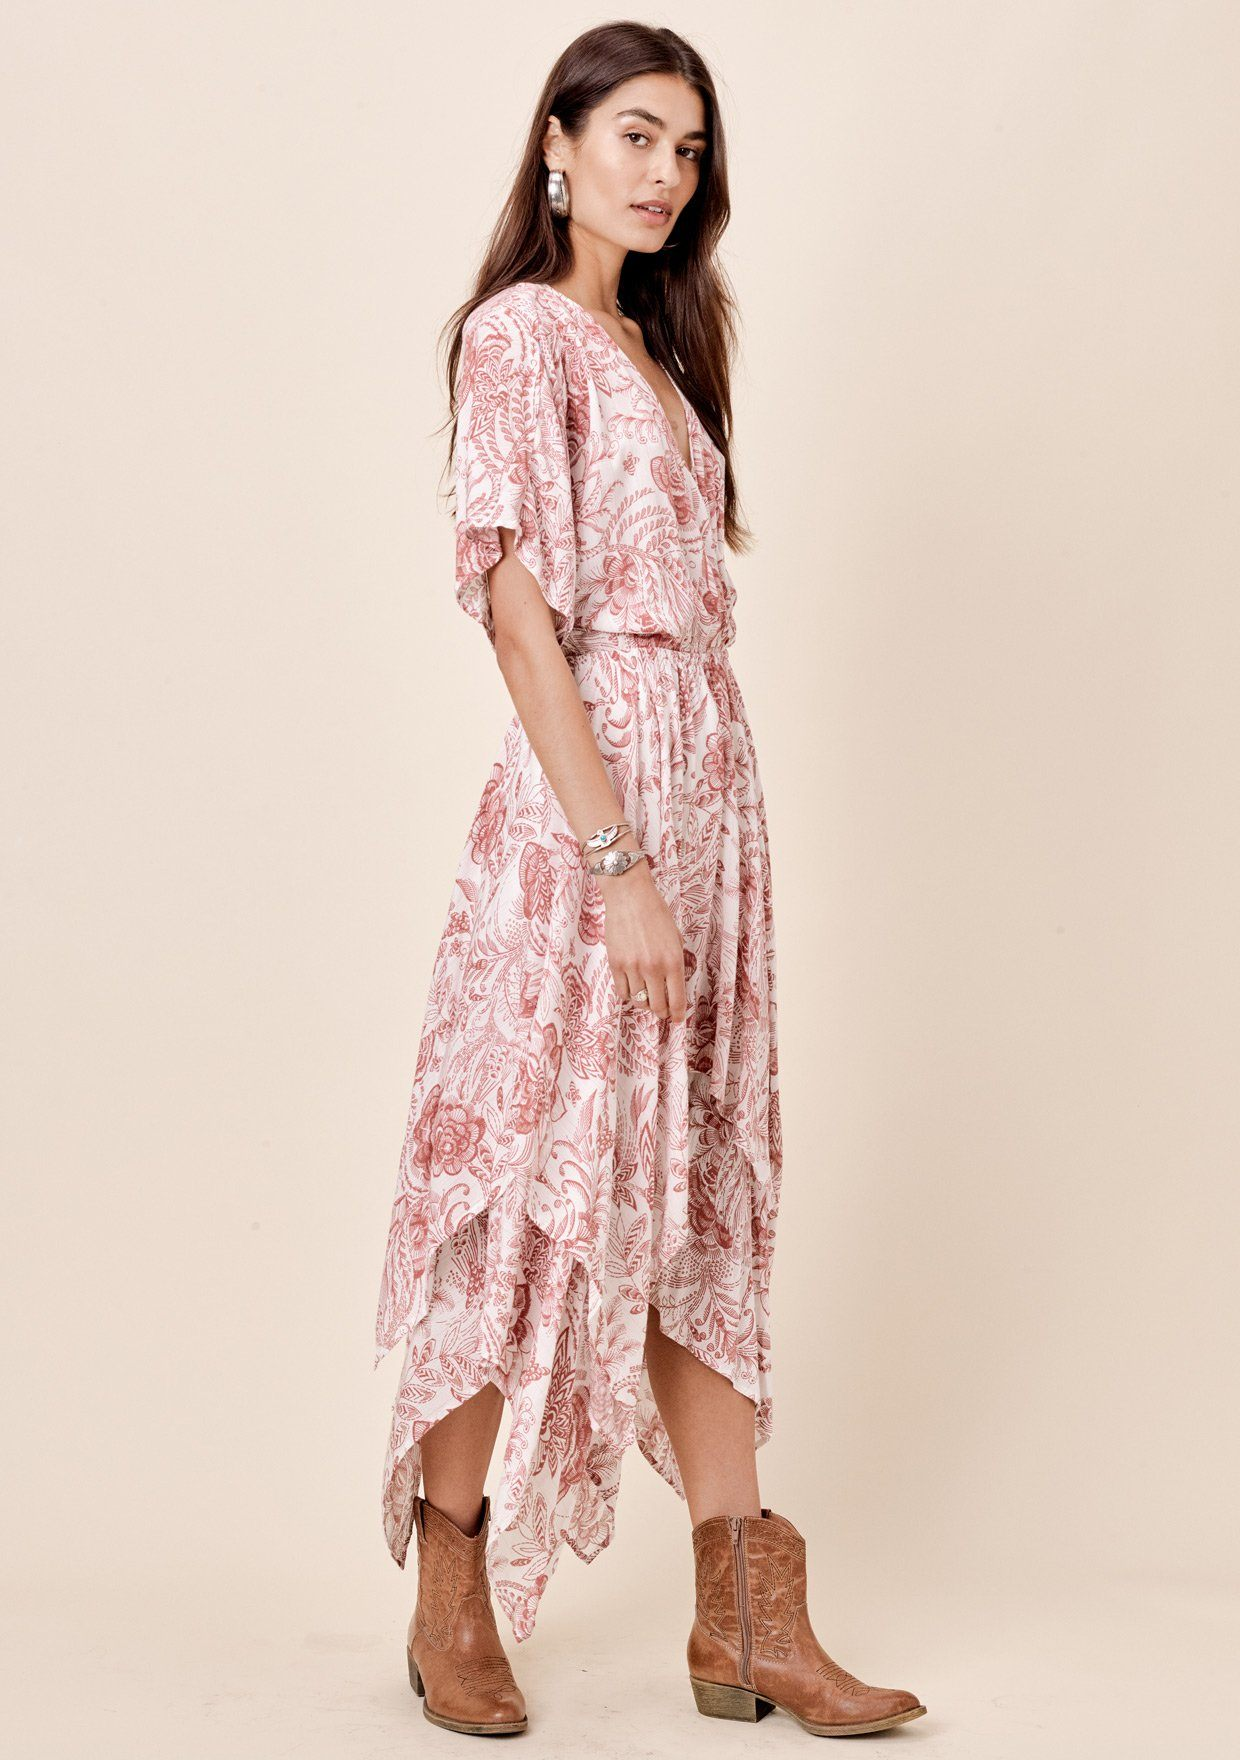 [Color: Rose/Taupe] Lovestitch rose floral printed kimono sleeve dress Lovestitch navy floral printed kimono sleeve dress with handkerchief hem Lovestitch navy floral printed kimono sleeve dress with handkerchief hem